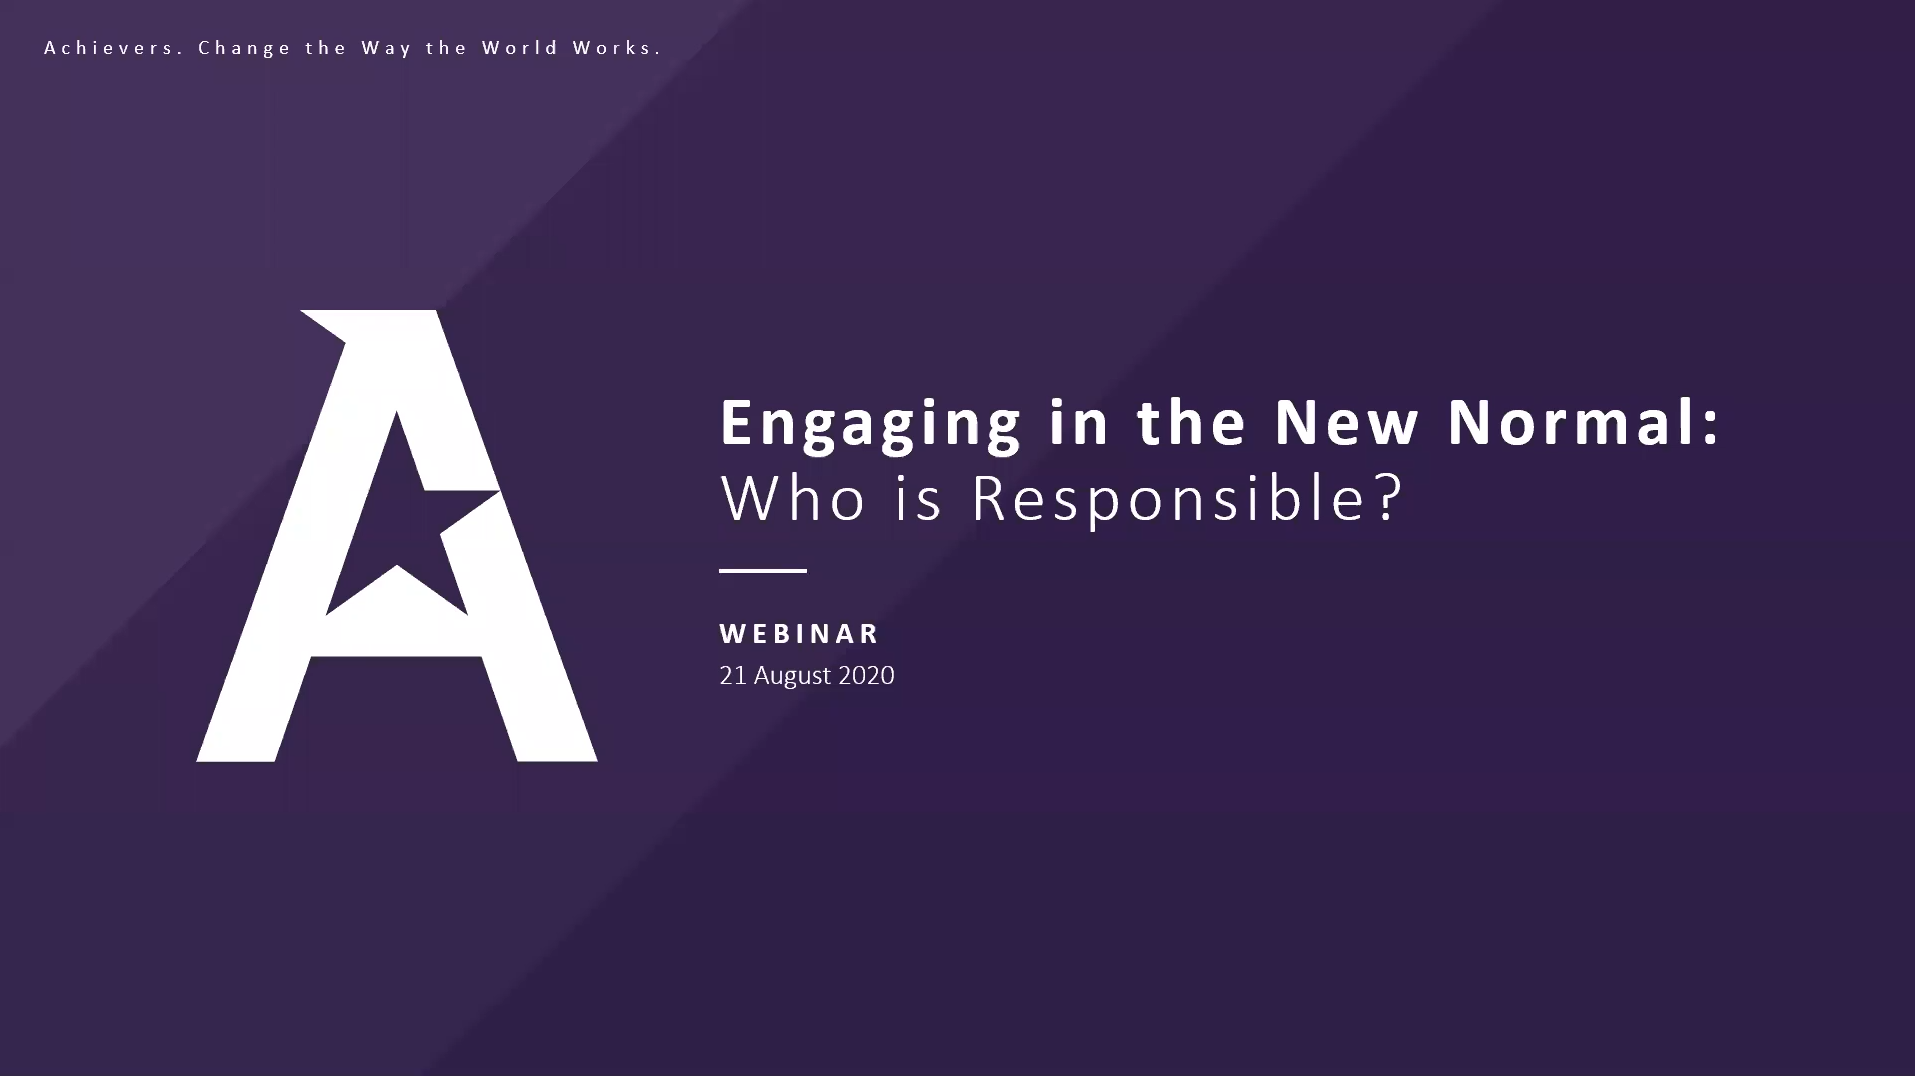 Engaging in the new normal: Who is responsible?